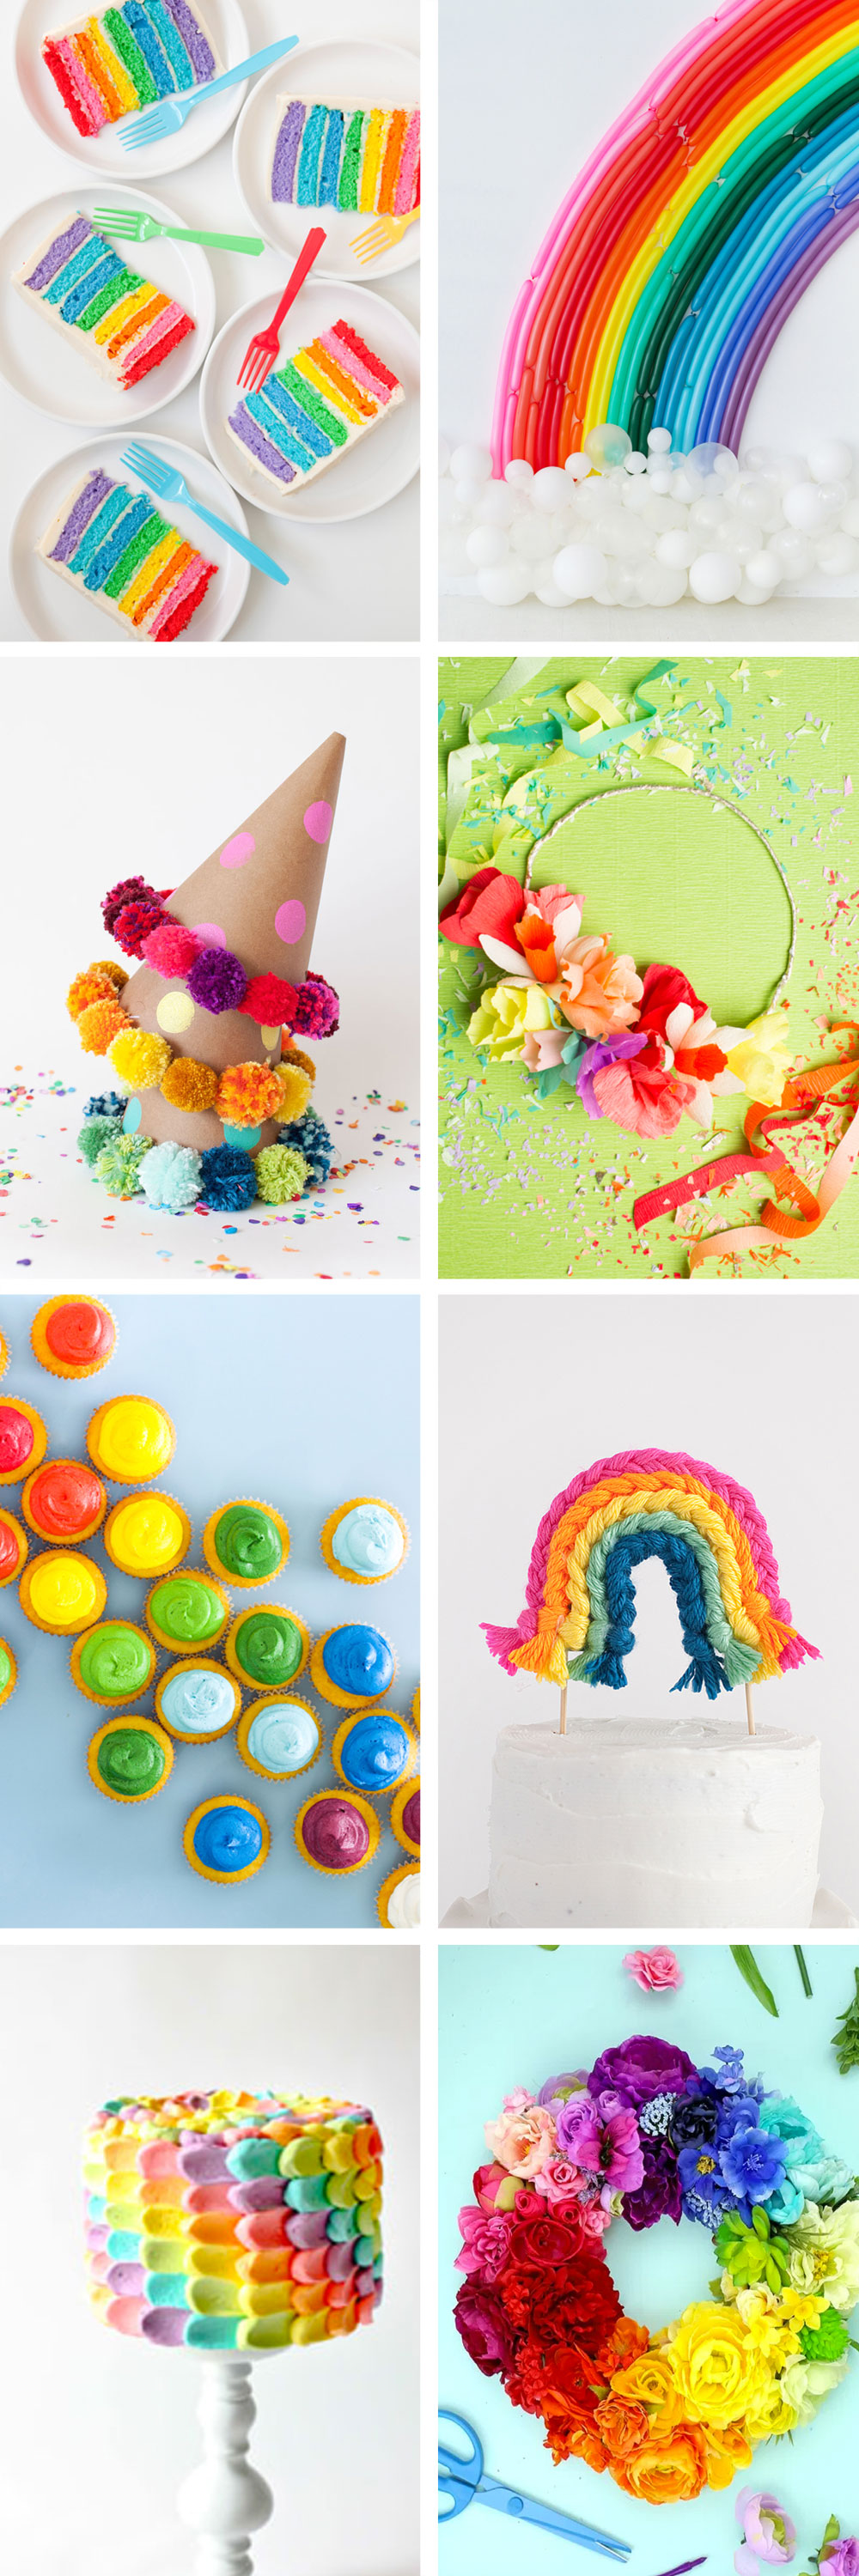 Rainbow-diy-crafts-and-treats